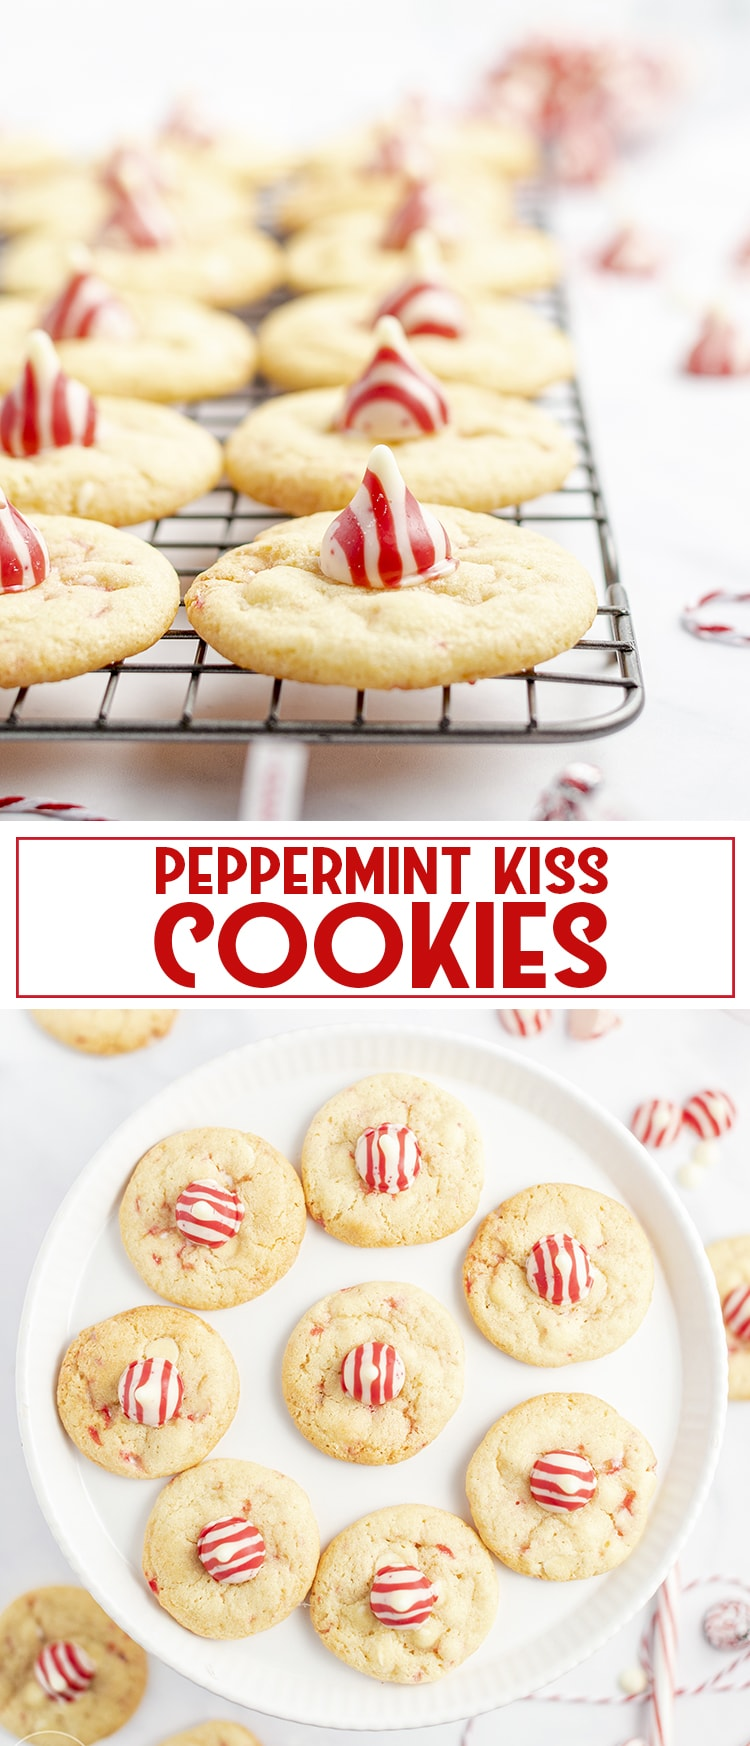 These peppermint kiss cookies are filled with crushed candy cane pieces and white chocolate chips in the dough, with a peppermint kiss on top. They're perfect for Christmas!